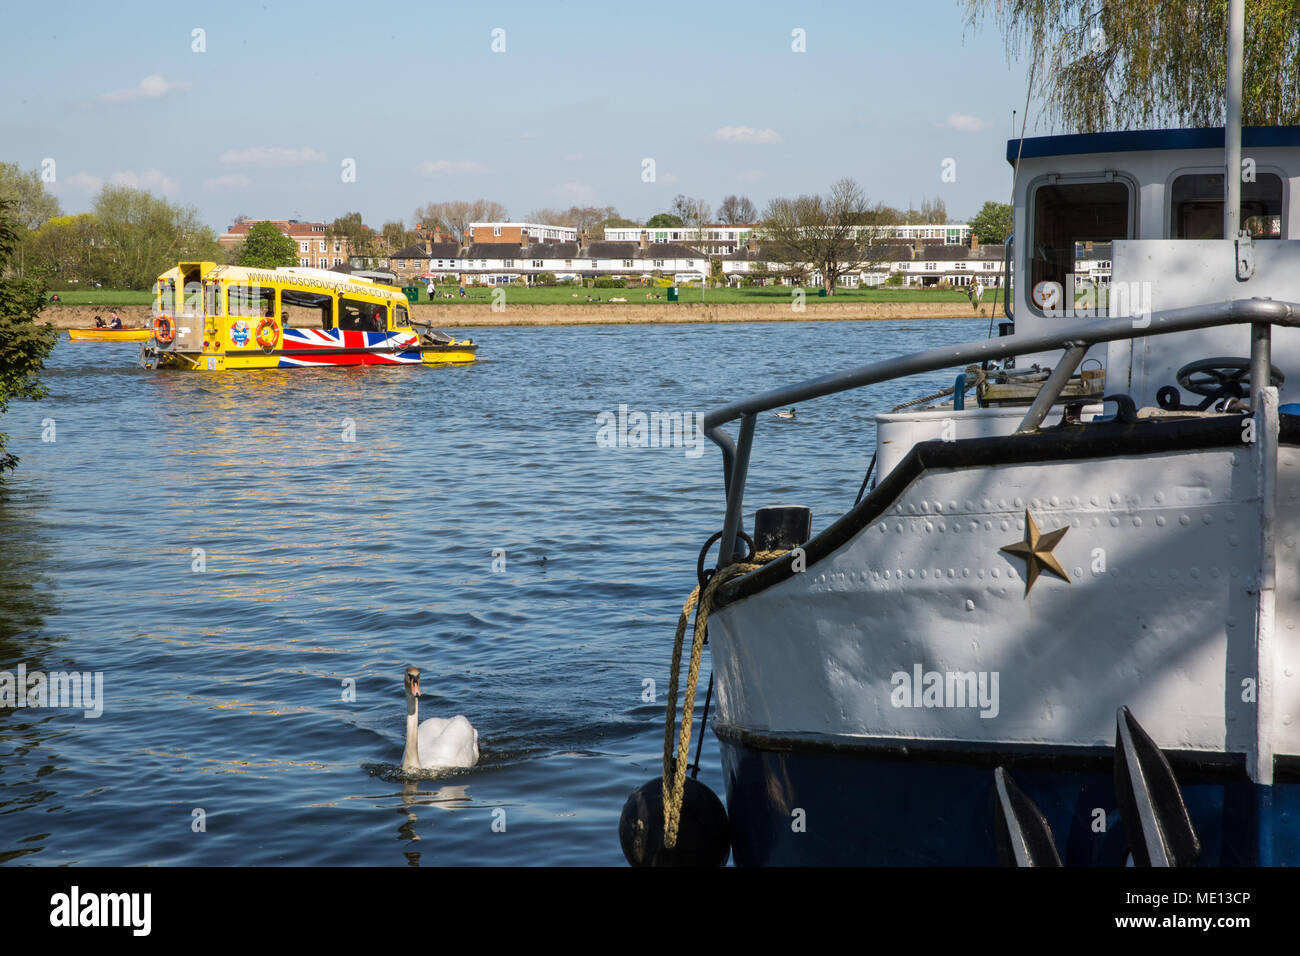 Windsor, UK. 20th April, 2018. A view towards the Brocas in Eton. - Stock Image